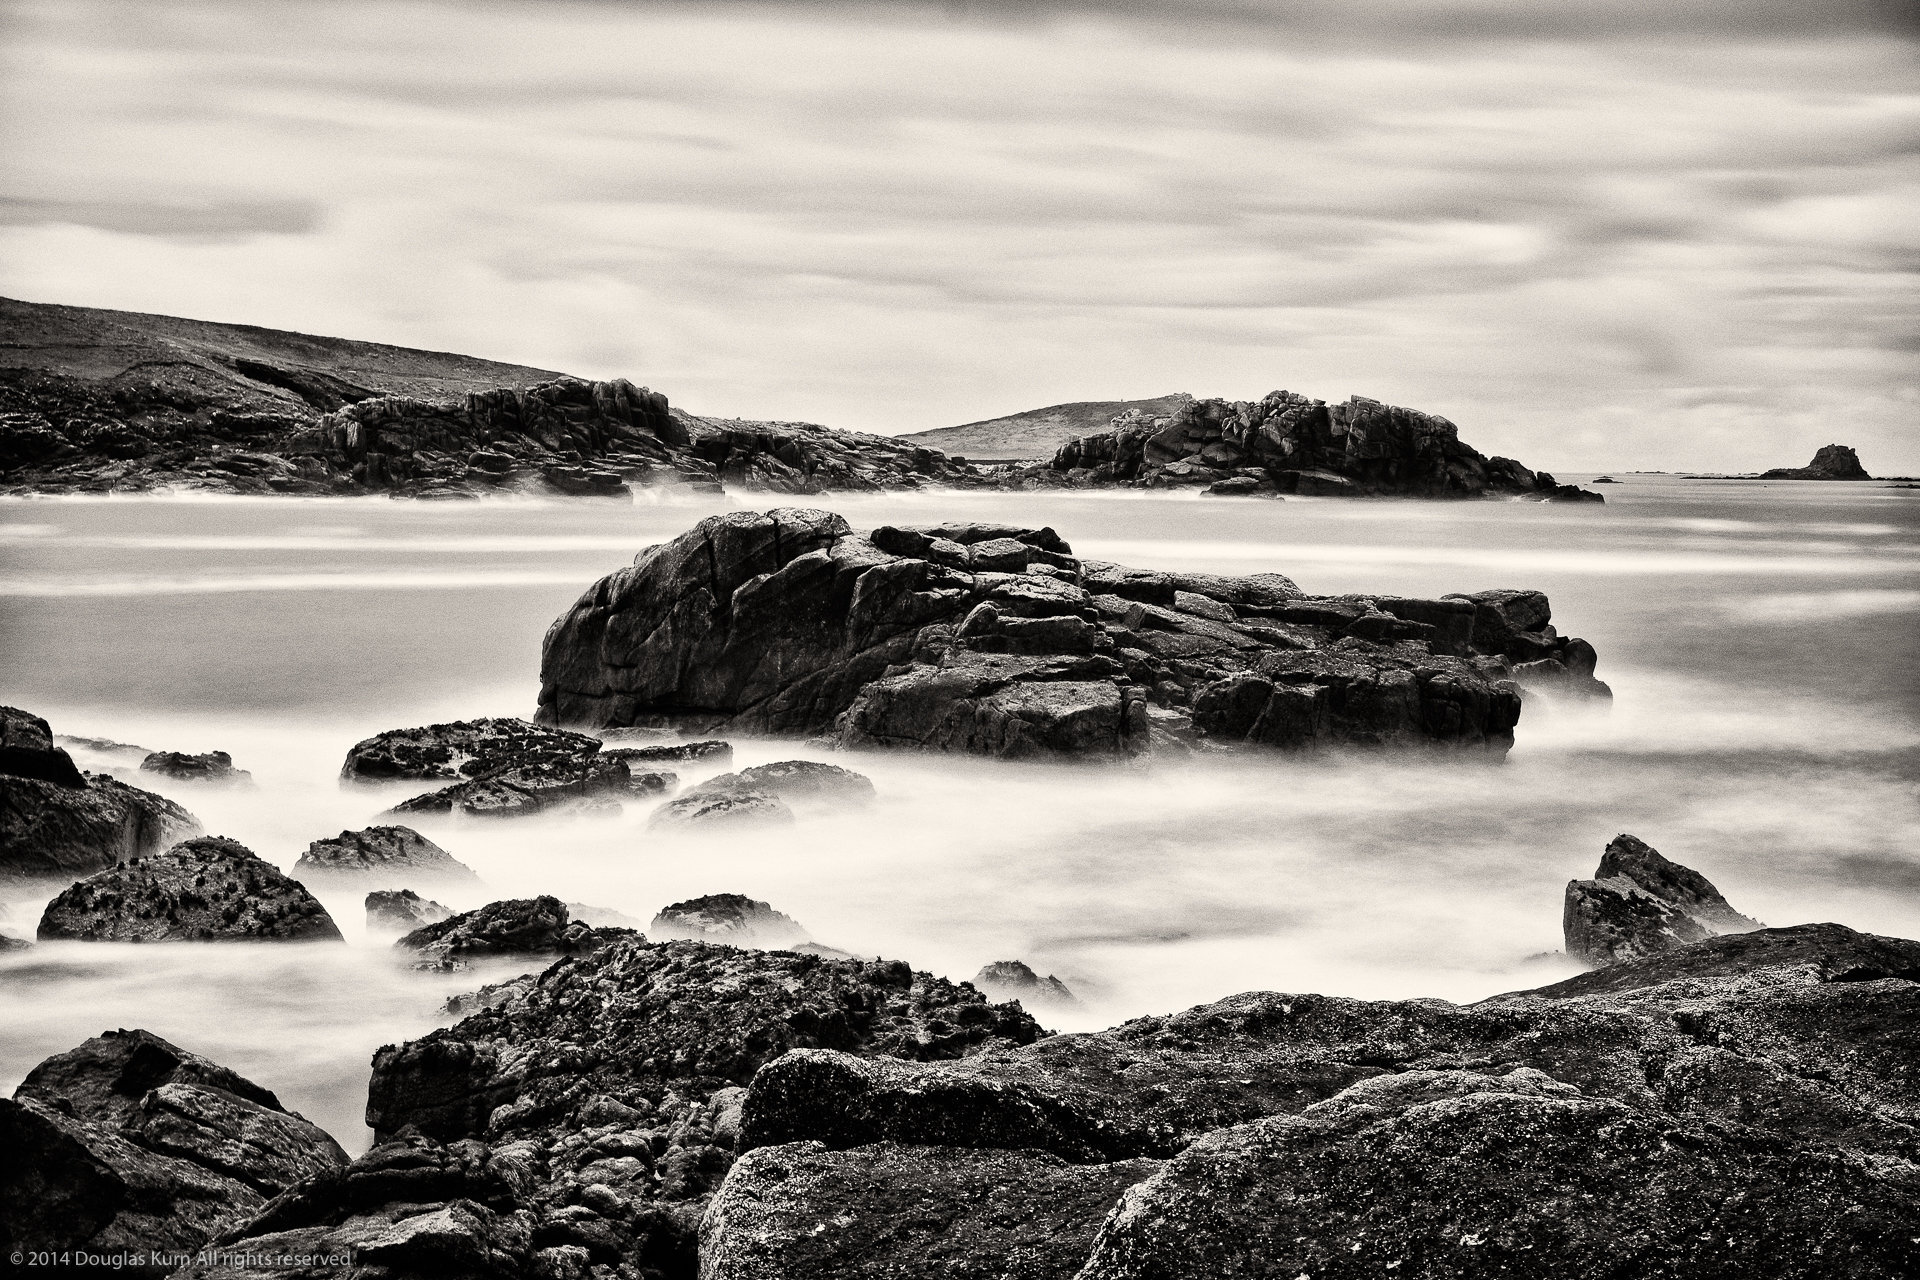 Isles of Scilly Rocks 1